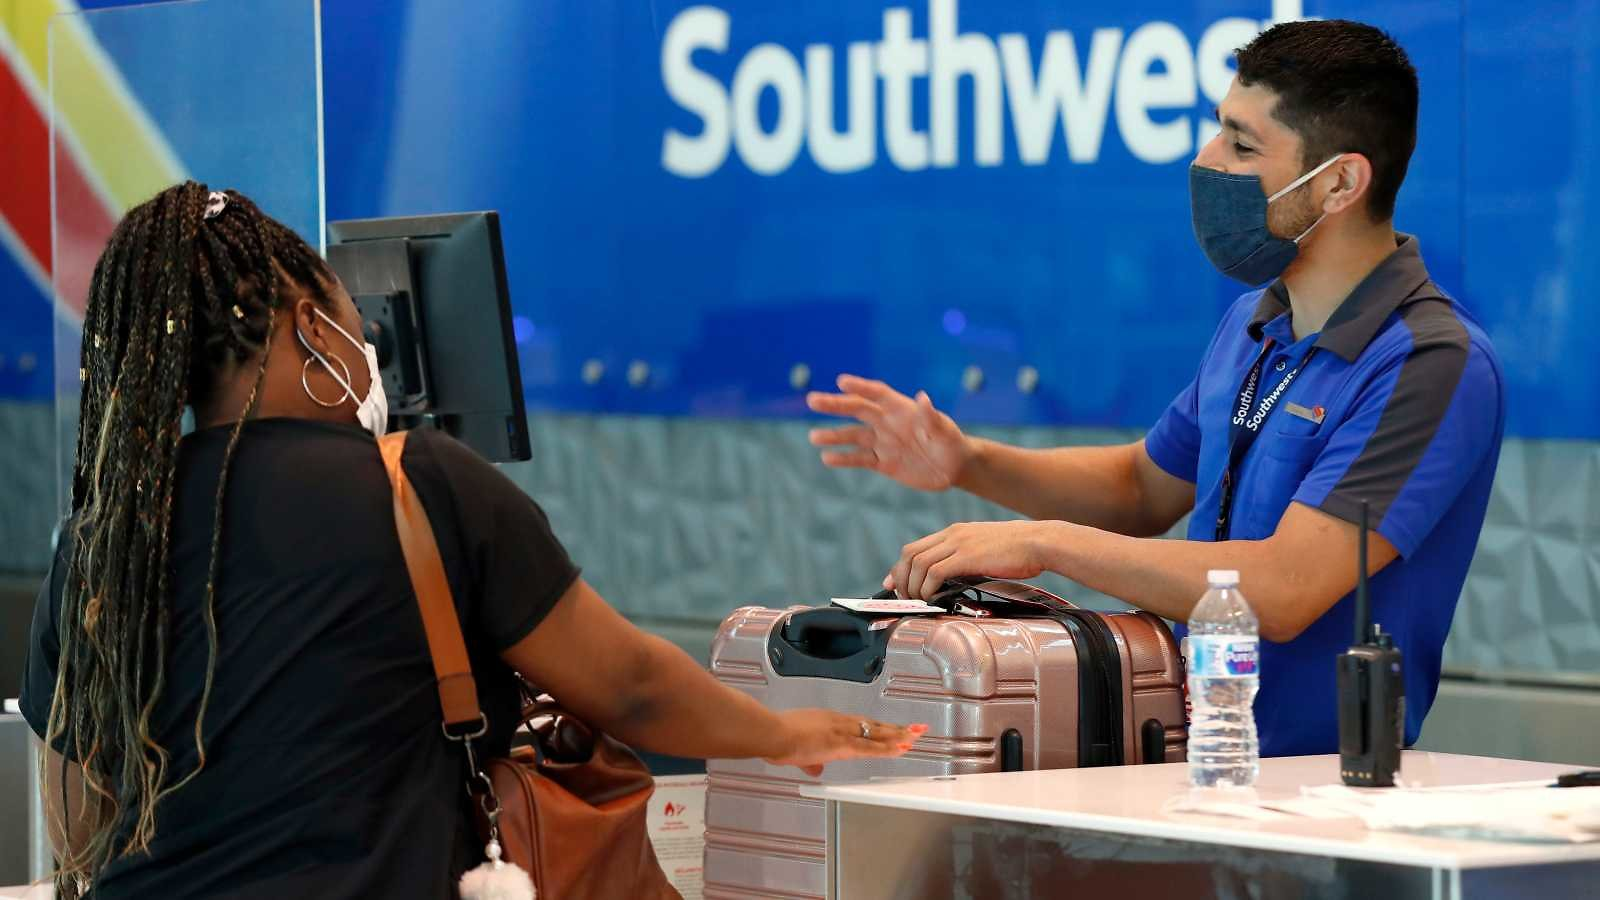 Southwest Airlines Will Start Filling Empty Middle Seats in December, Request Refund for Paid Tickets by Oct. 31